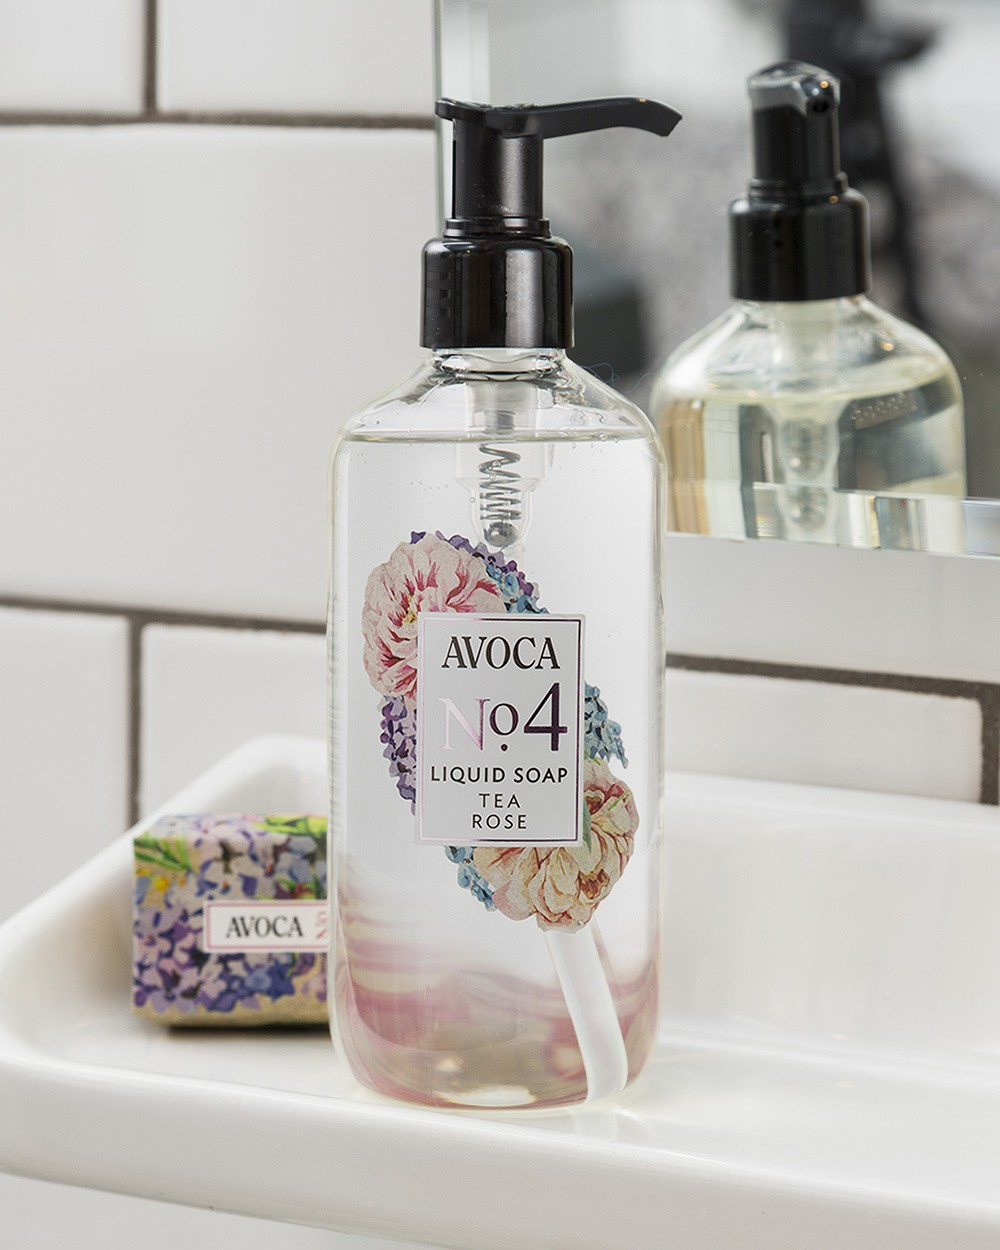 Avoca No 4 Liquid Soap Tea Rose